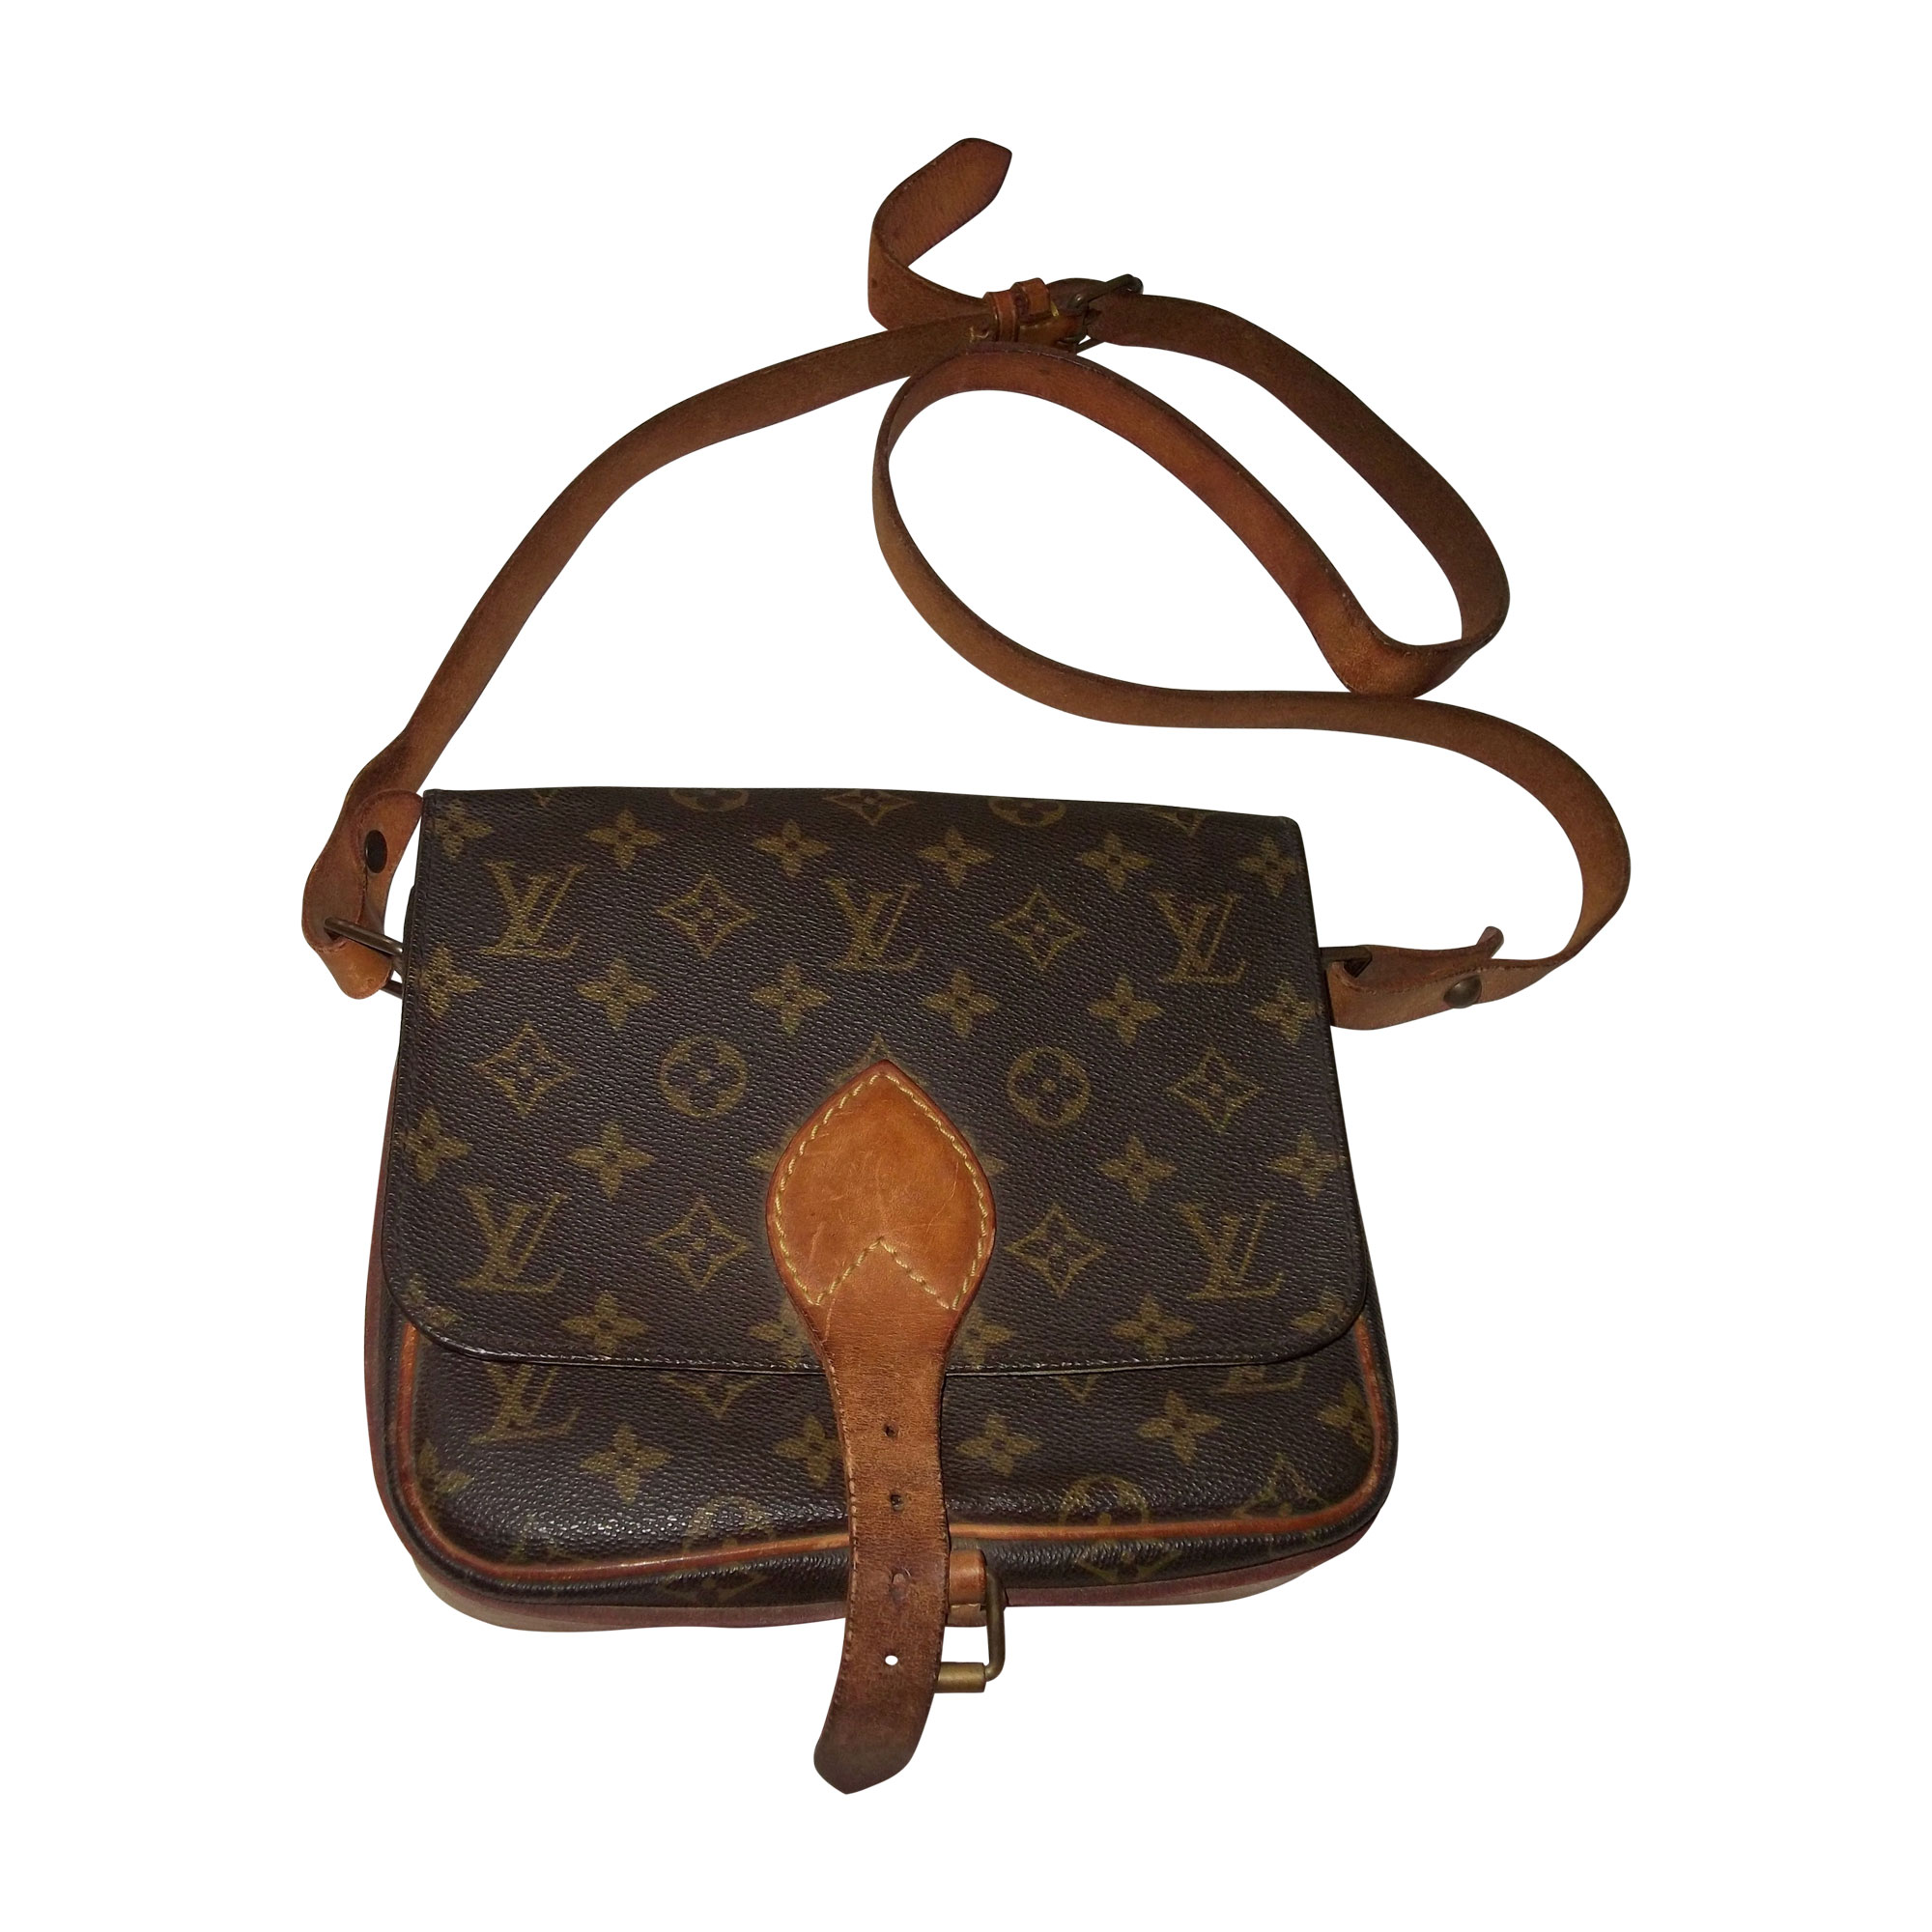 77197be3b9de Sac en bandoulière en cuir LOUIS VUITTON marron vendu par ...